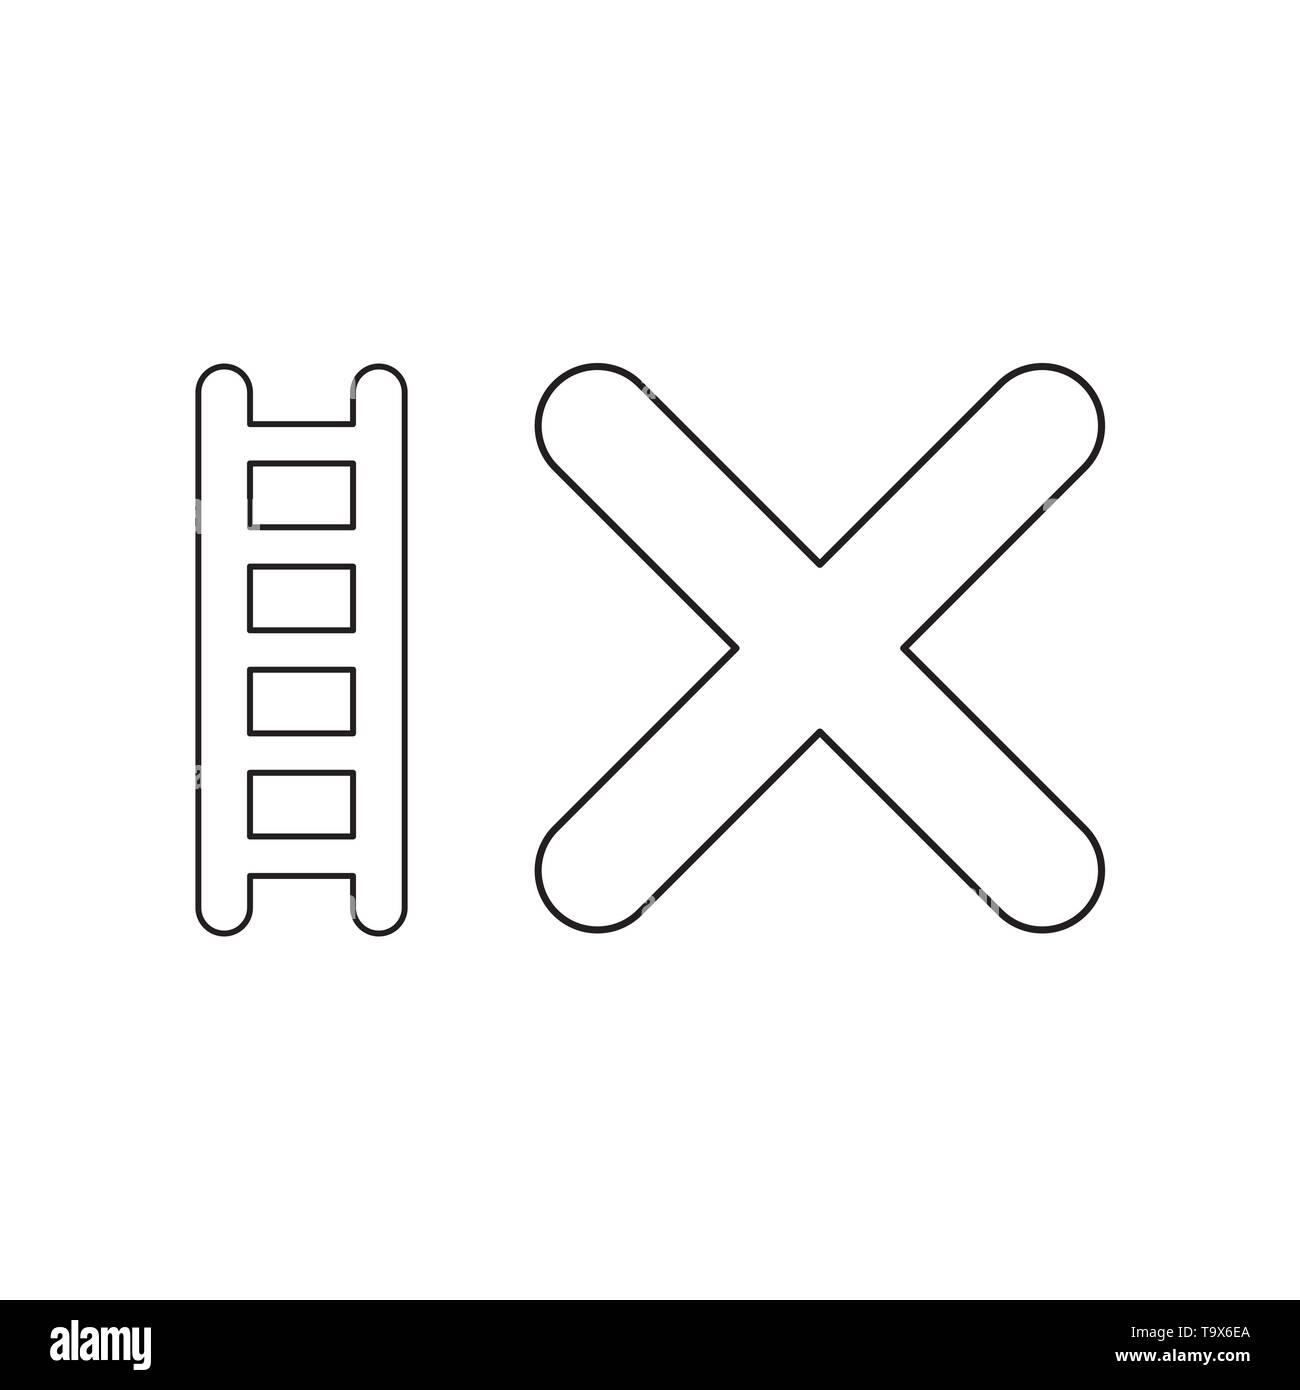 Vector icon concept of ladder with x mark. Black outlines. - Stock Image